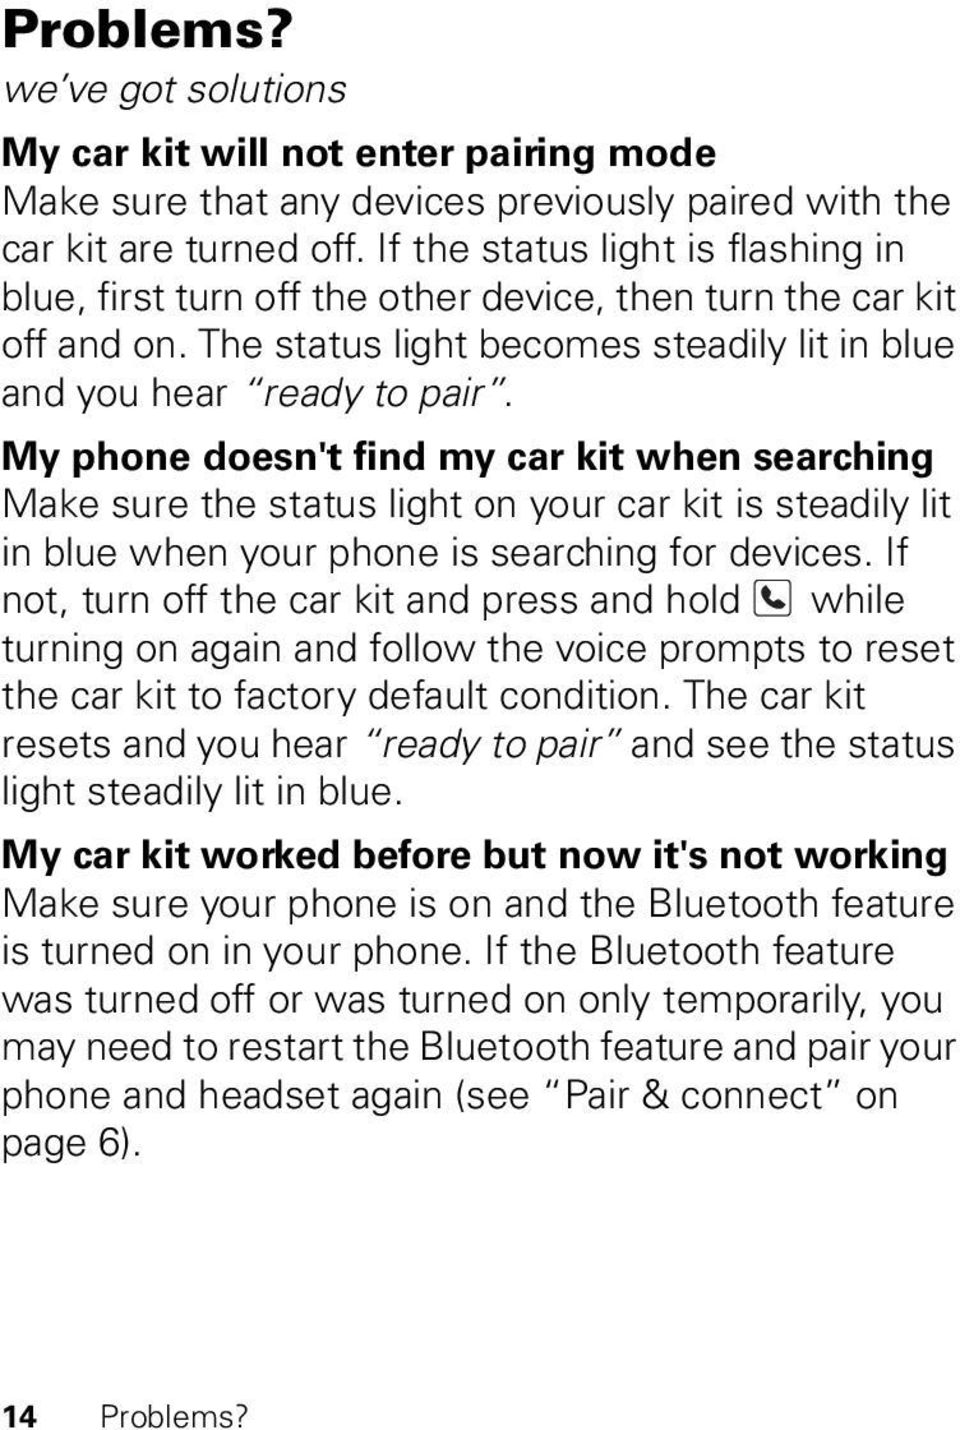 My phone doesn't find my car kit when searching Make sure the status light on your car kit is steadily lit in blue when your phone is searching for devices.